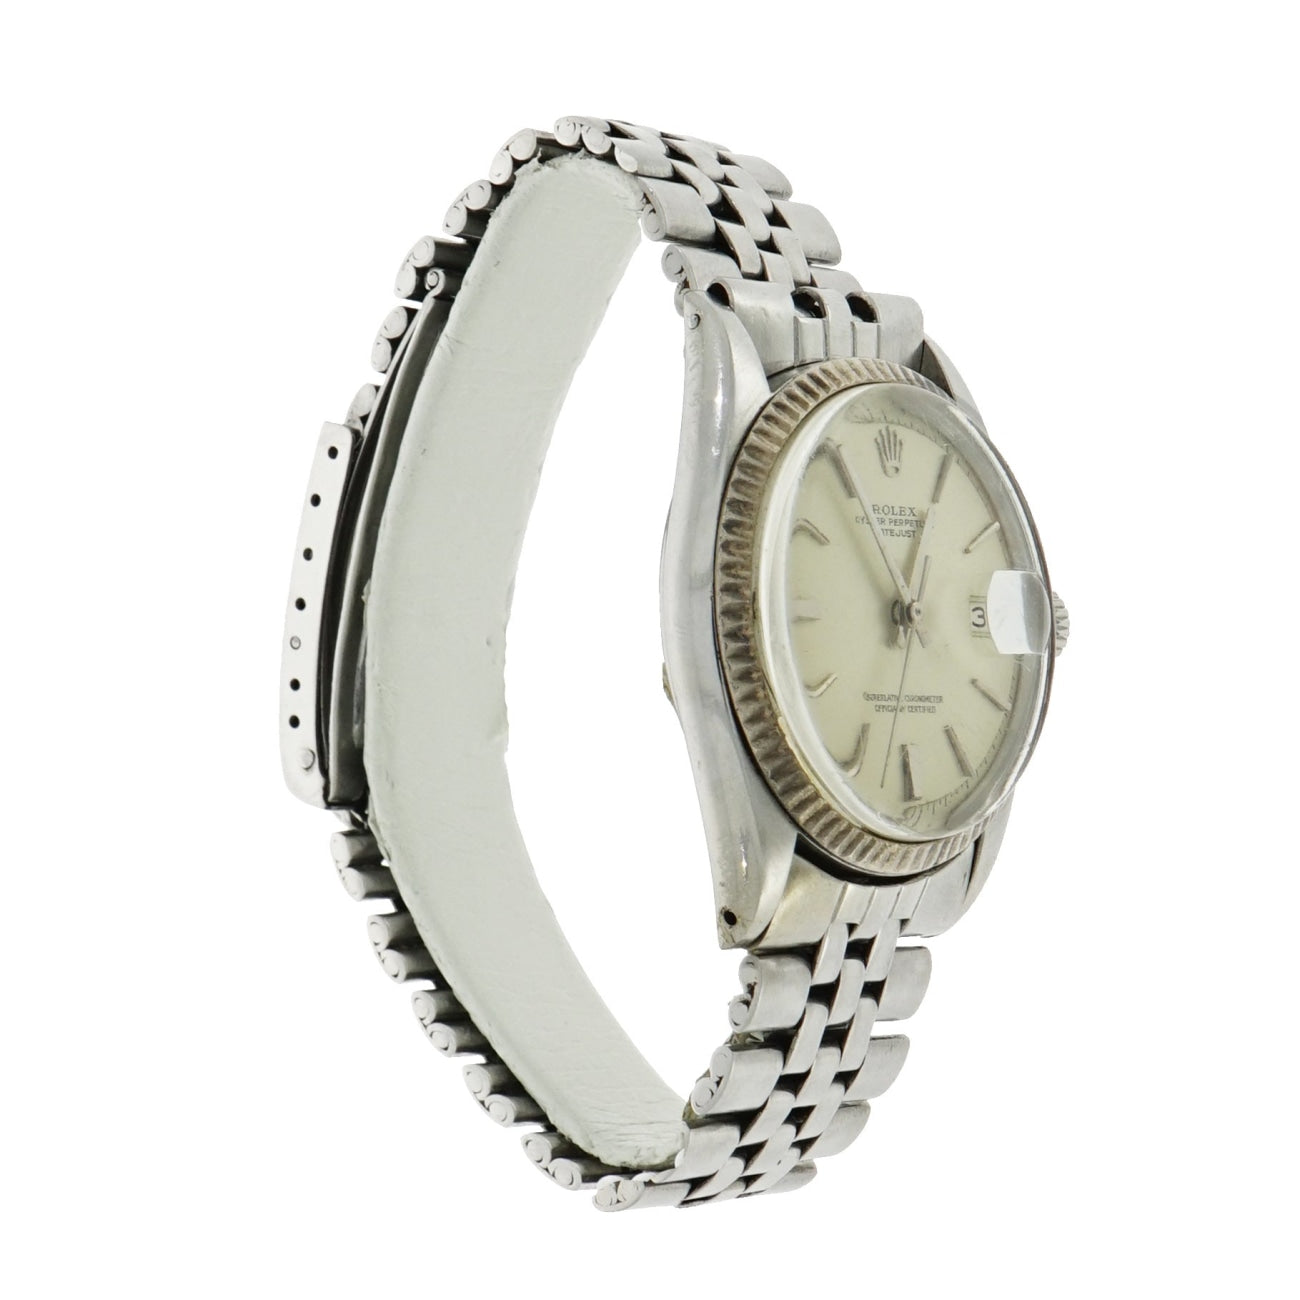 Pre-Owned Rolex Watches - Datejust 1601 | Manfredi Jewels